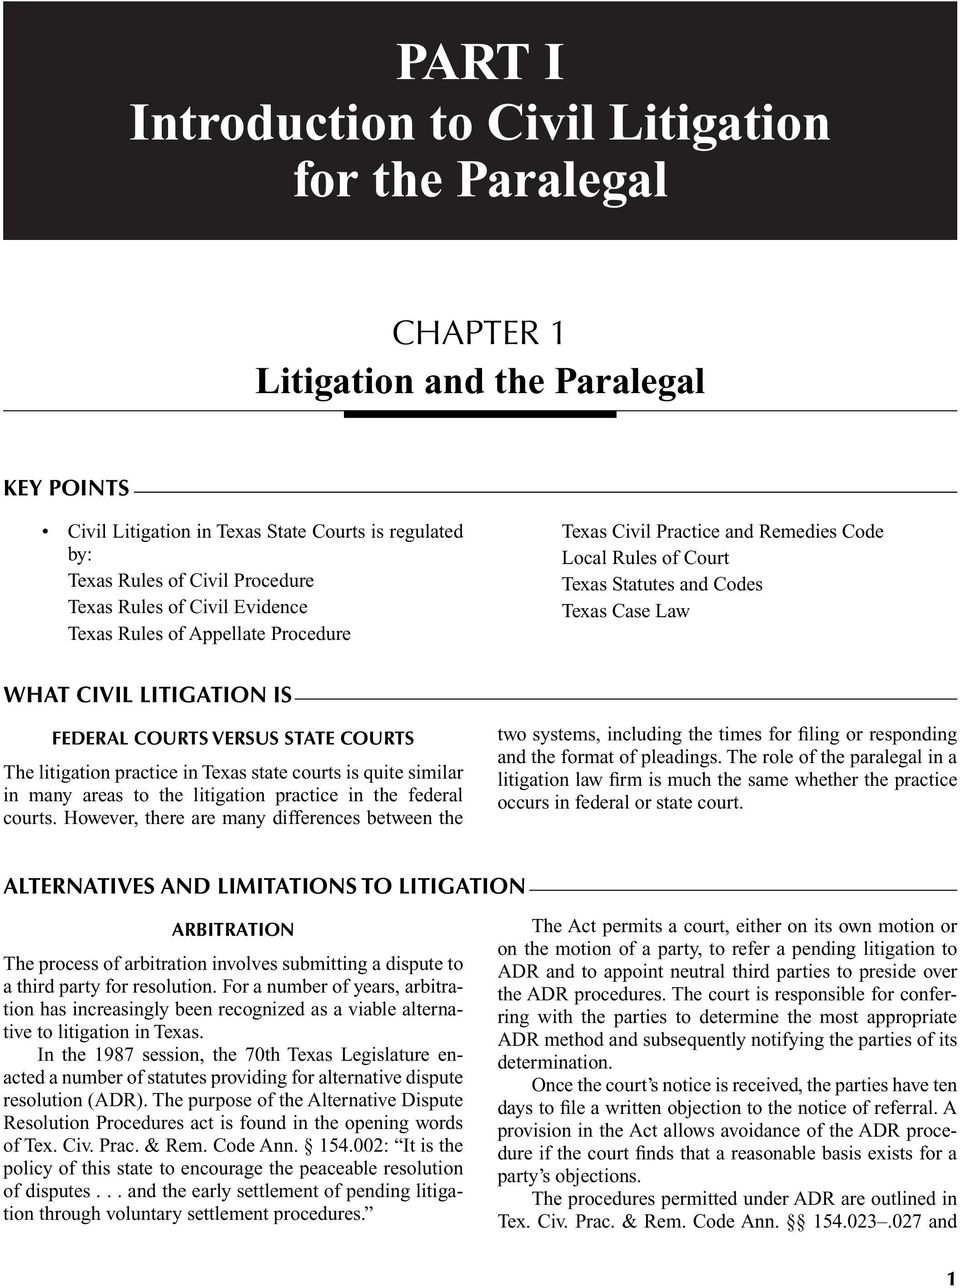 difference between jurisprudence and legal theory pdf